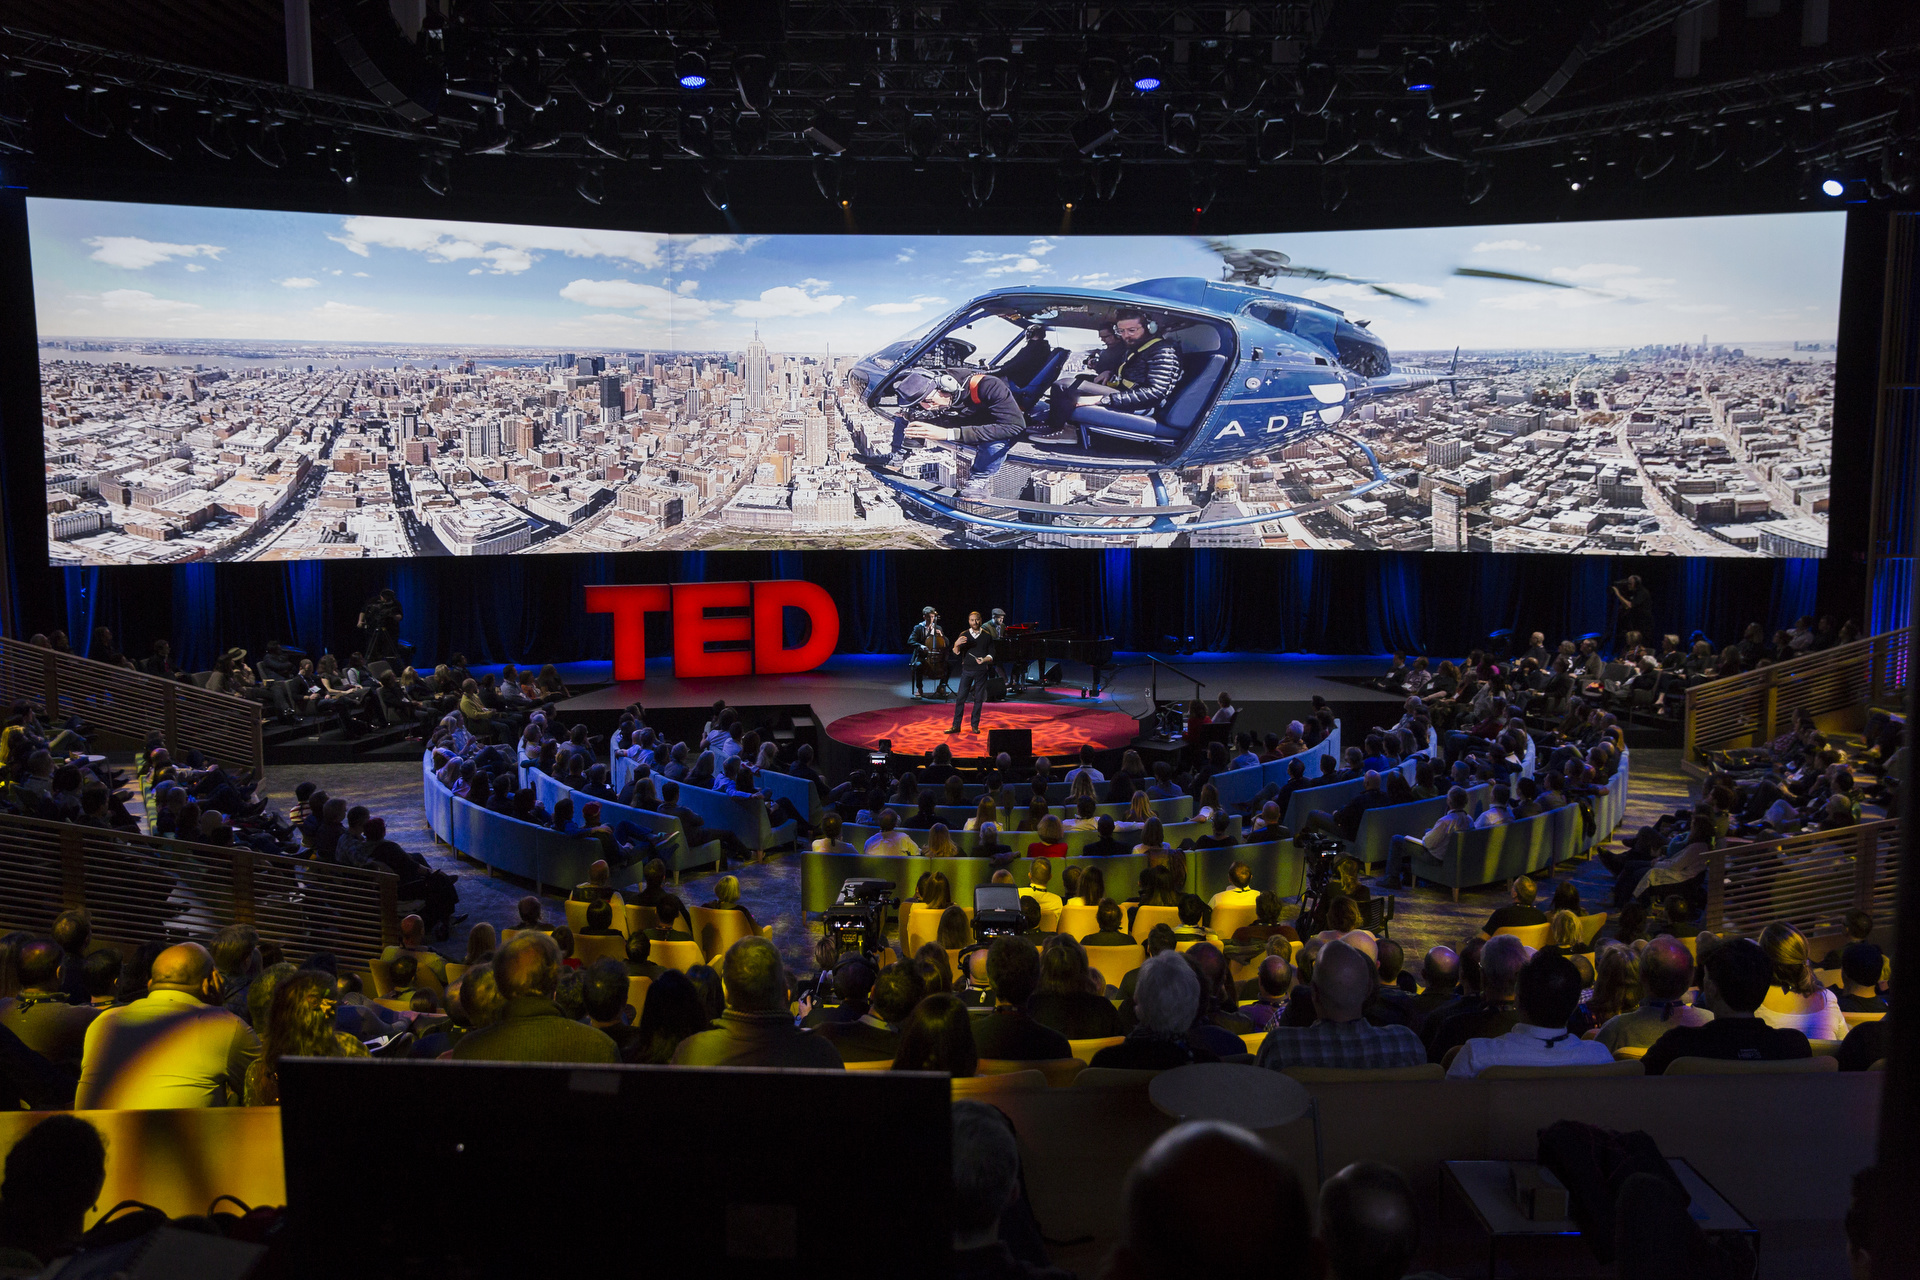 Chris Milk speaks at TED2016 - Dream, February 15-19, 2016, Vancouver Convention Center, Vancouver, Canada. Photo: Marla Aufmuth / TED